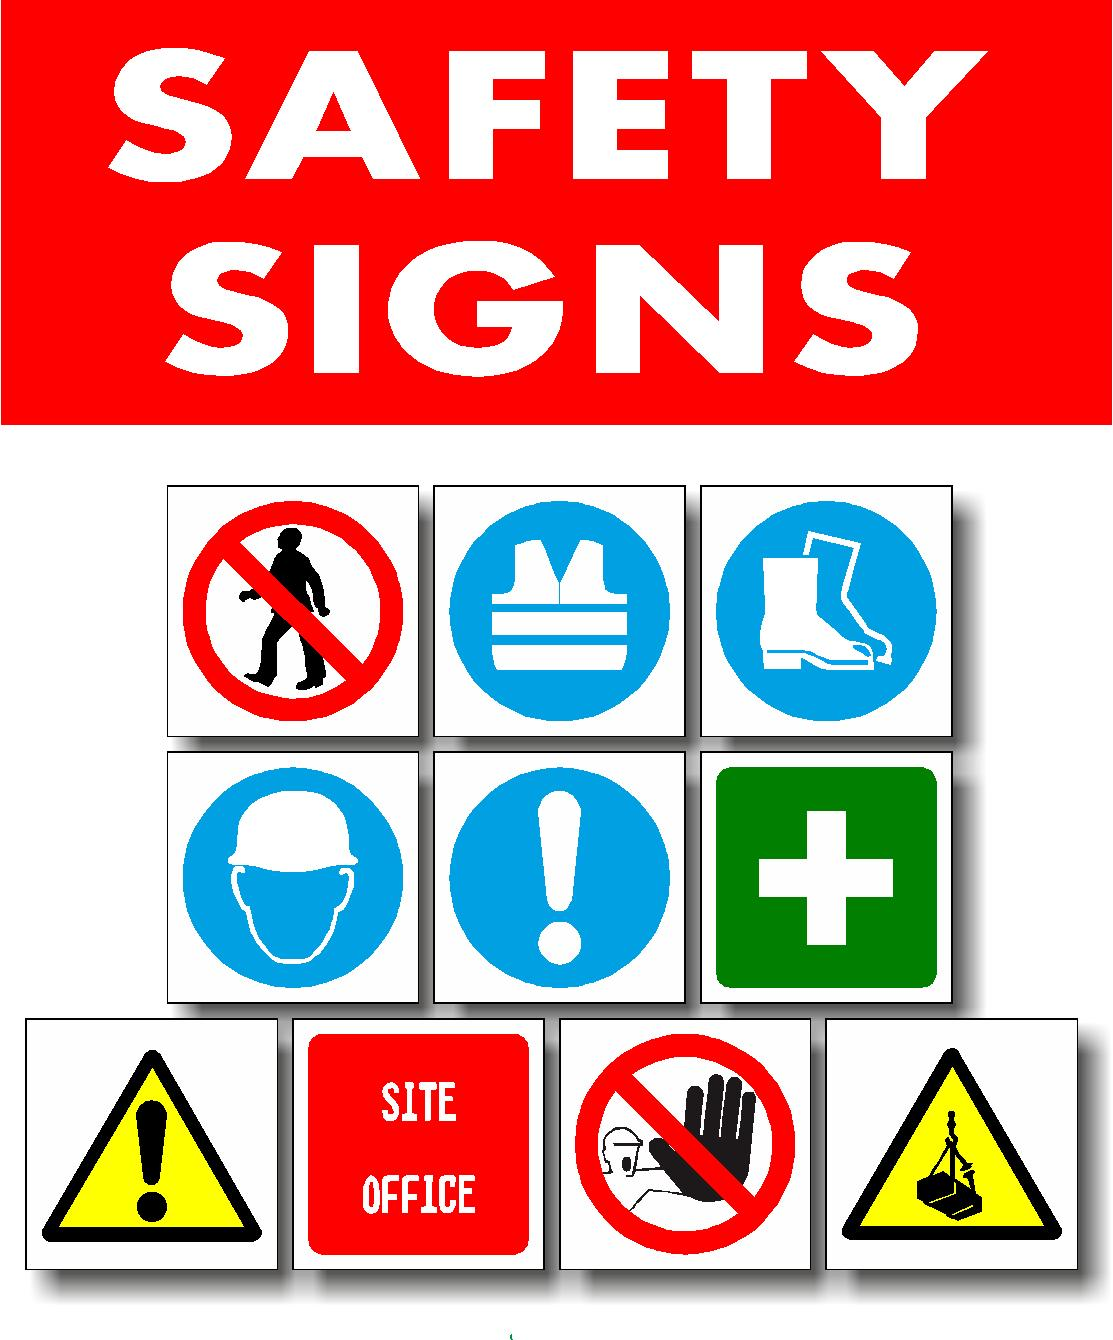 safety signs farm safety signs home safety signs farm safety signs